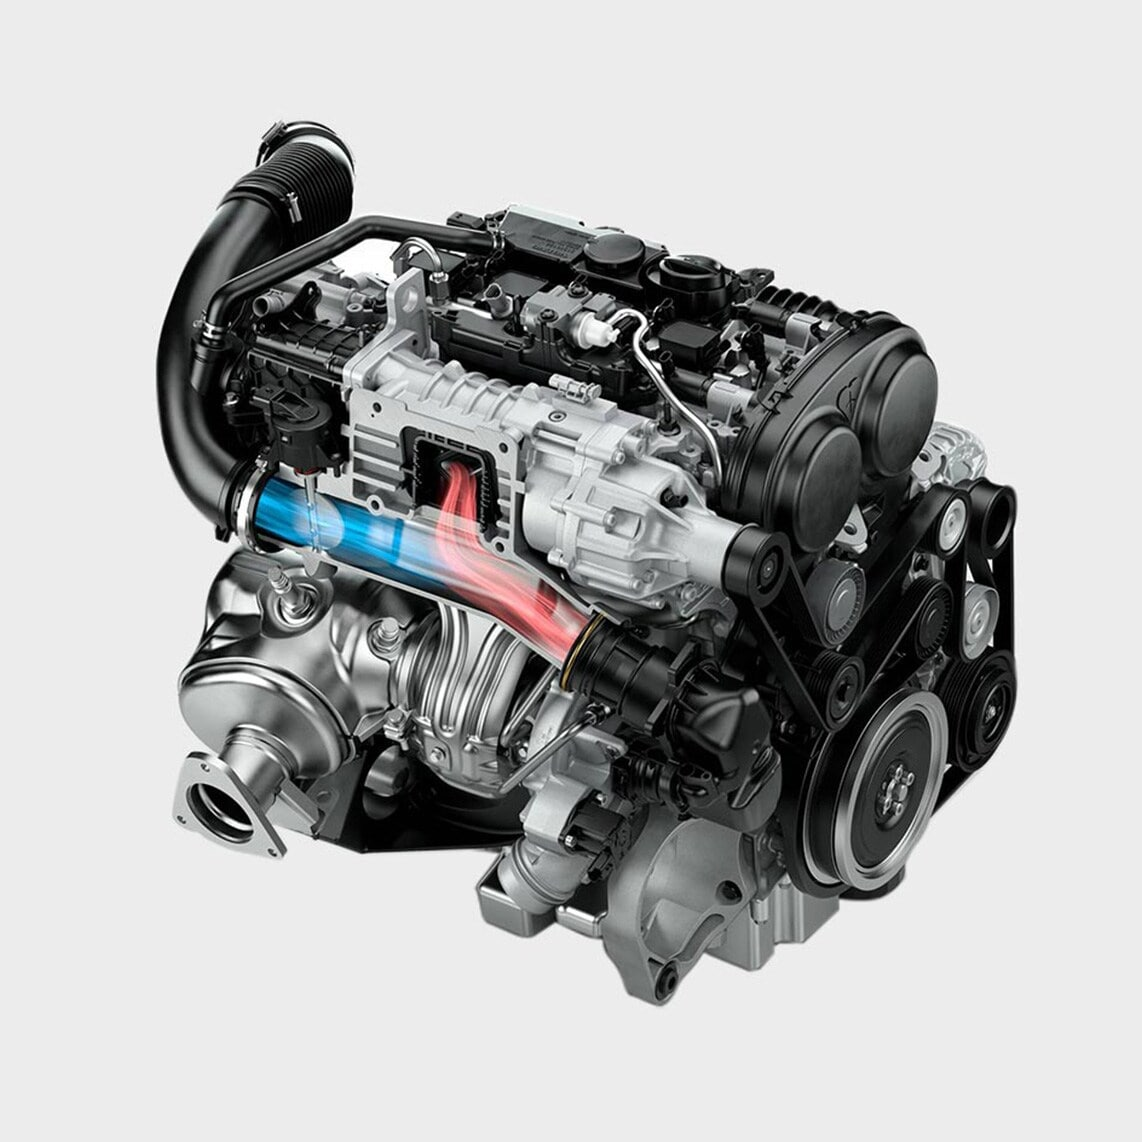 Réduction émission CO2 moteur hybride Break Volvo V90 T8 Twin Engine